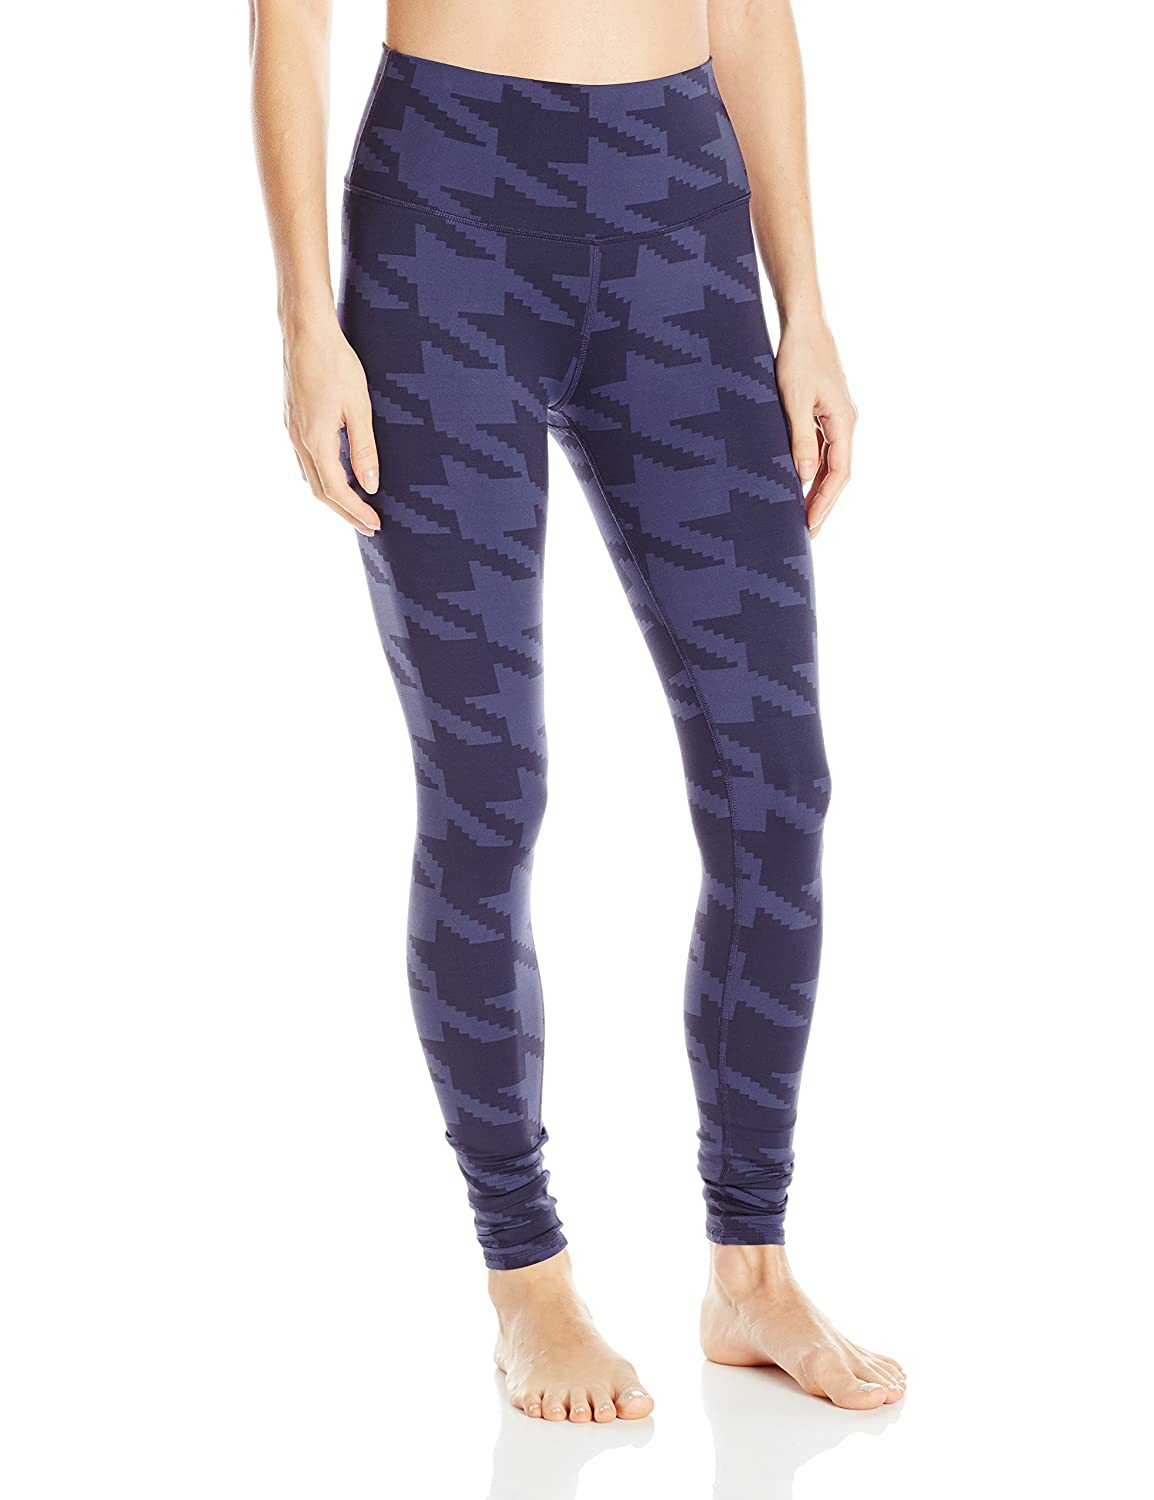 Rich Navy Houndstooth M Alo Yoga Women's High Waist Airbrush Legging Engineered